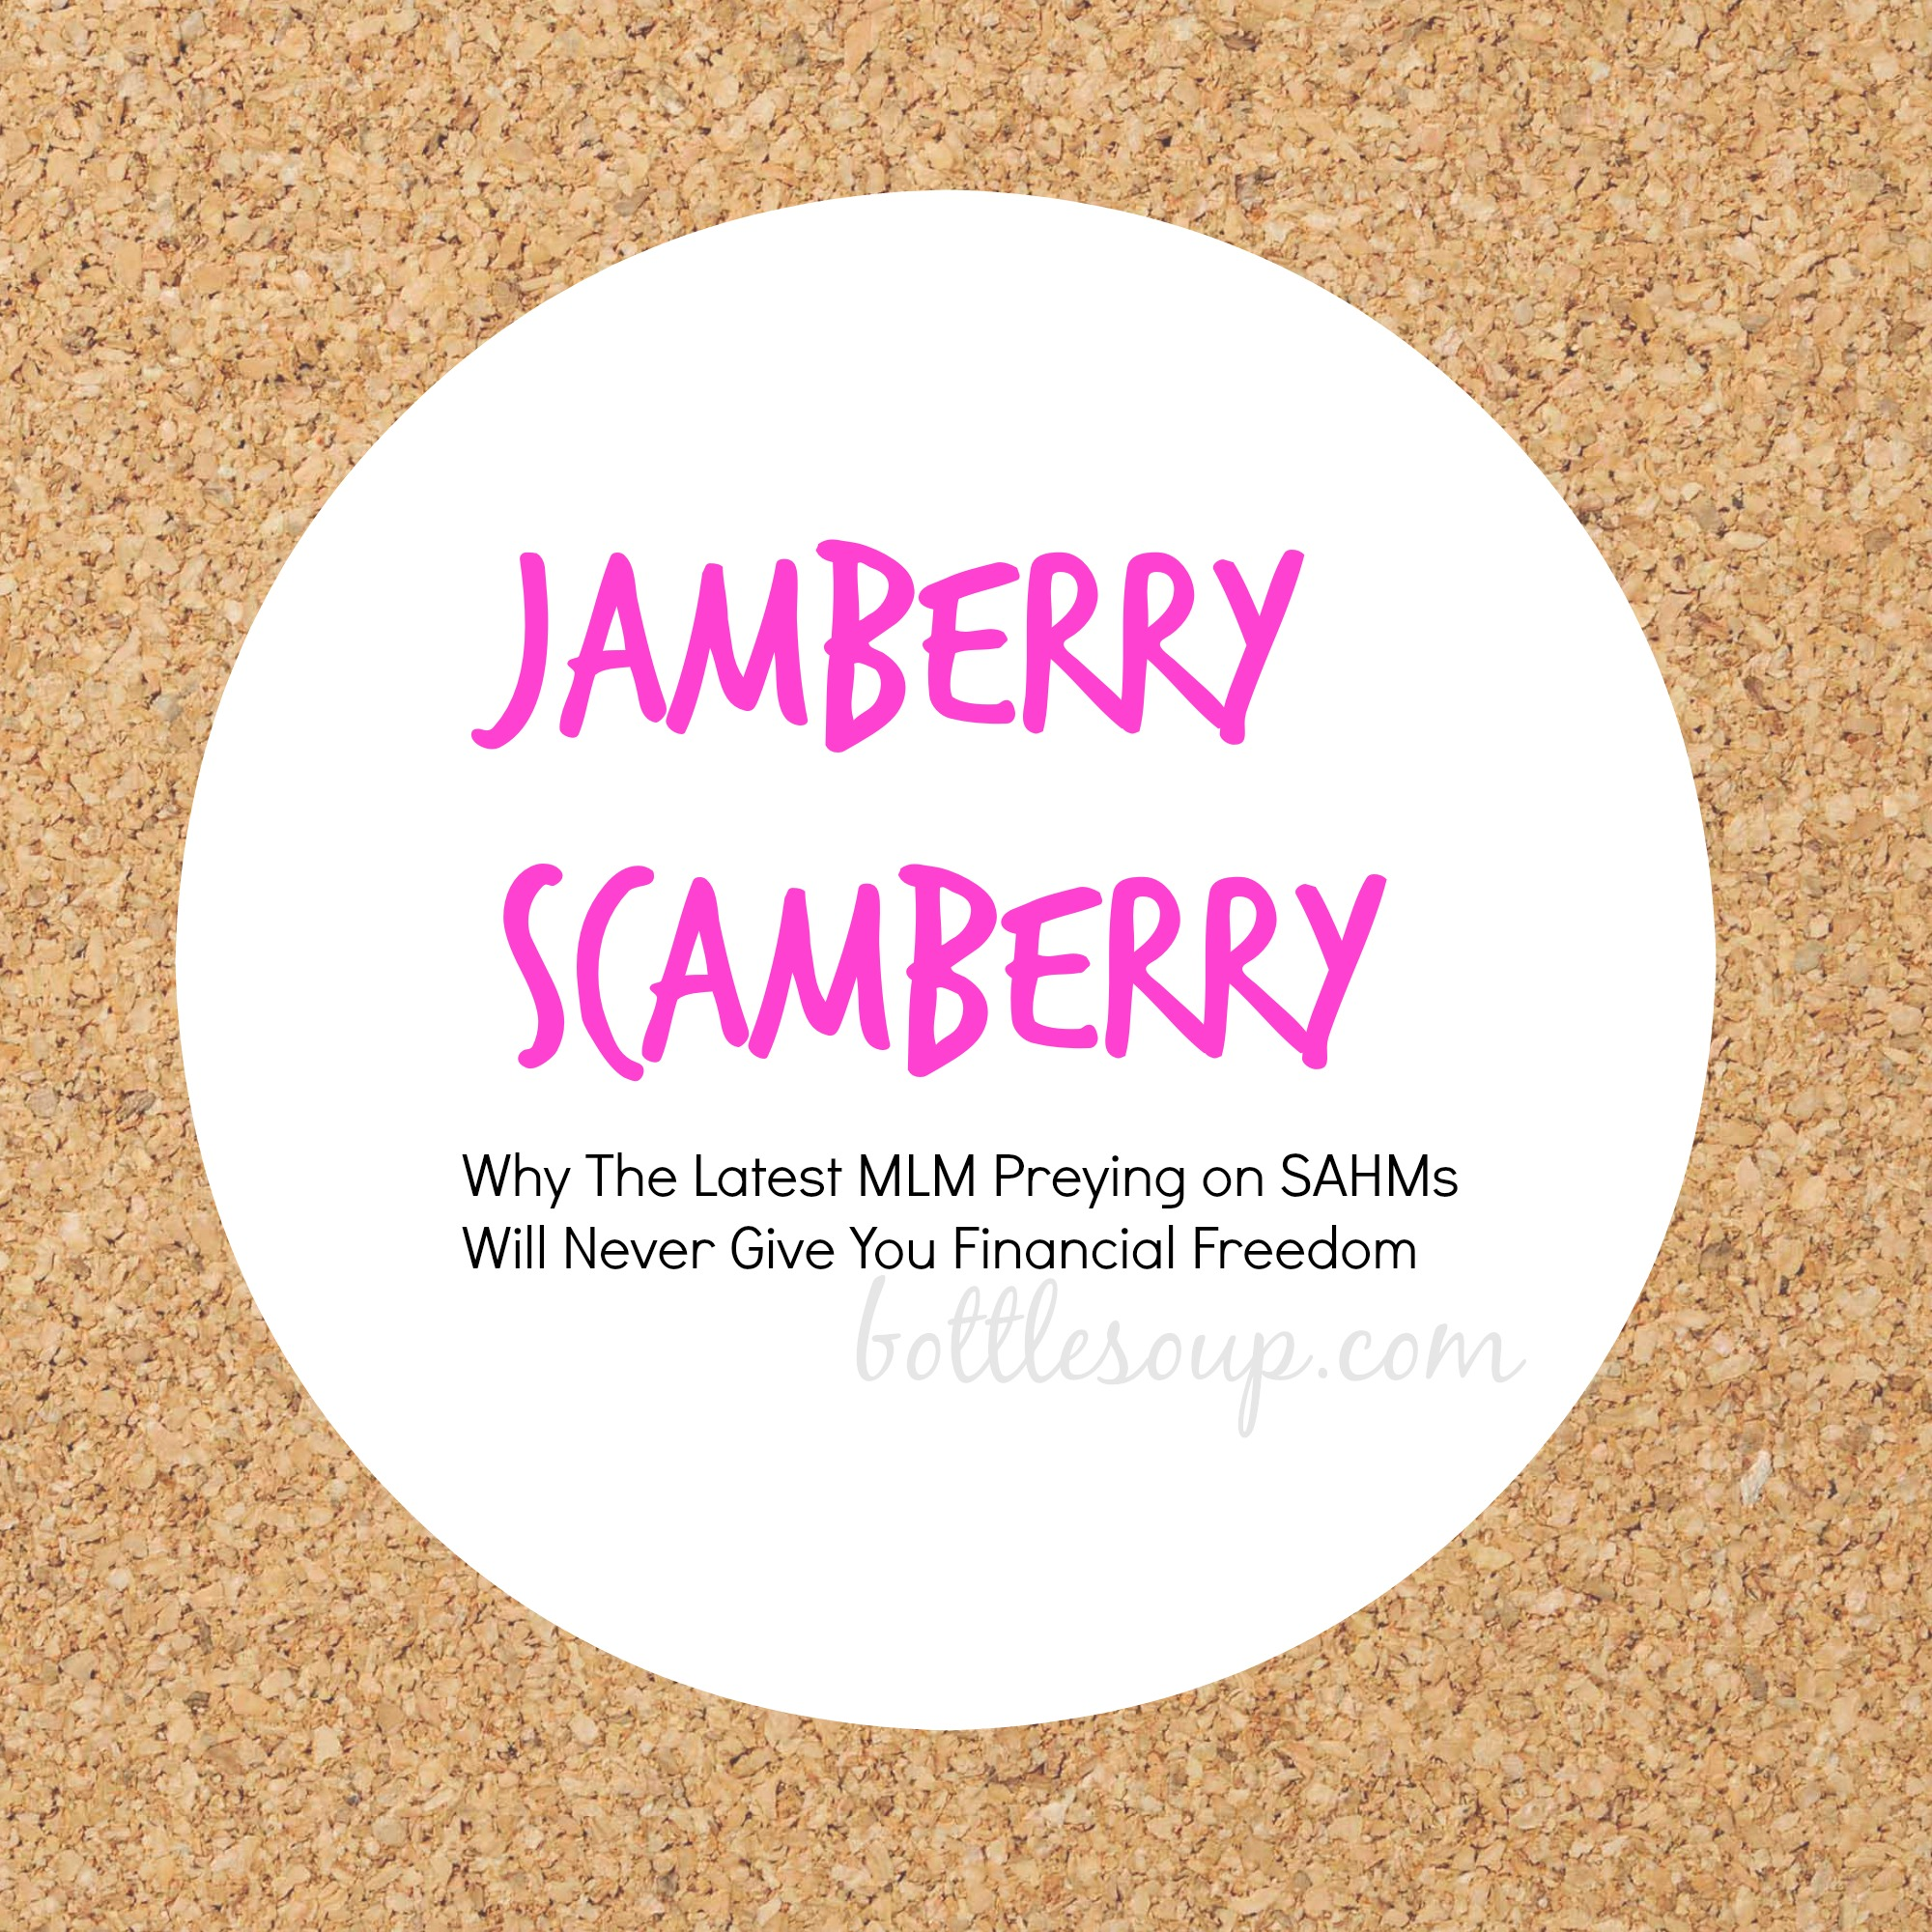 Jamberry Scamberry Why The Latest Mlm Preying On Sahms Will Never Give You Financial Freedom